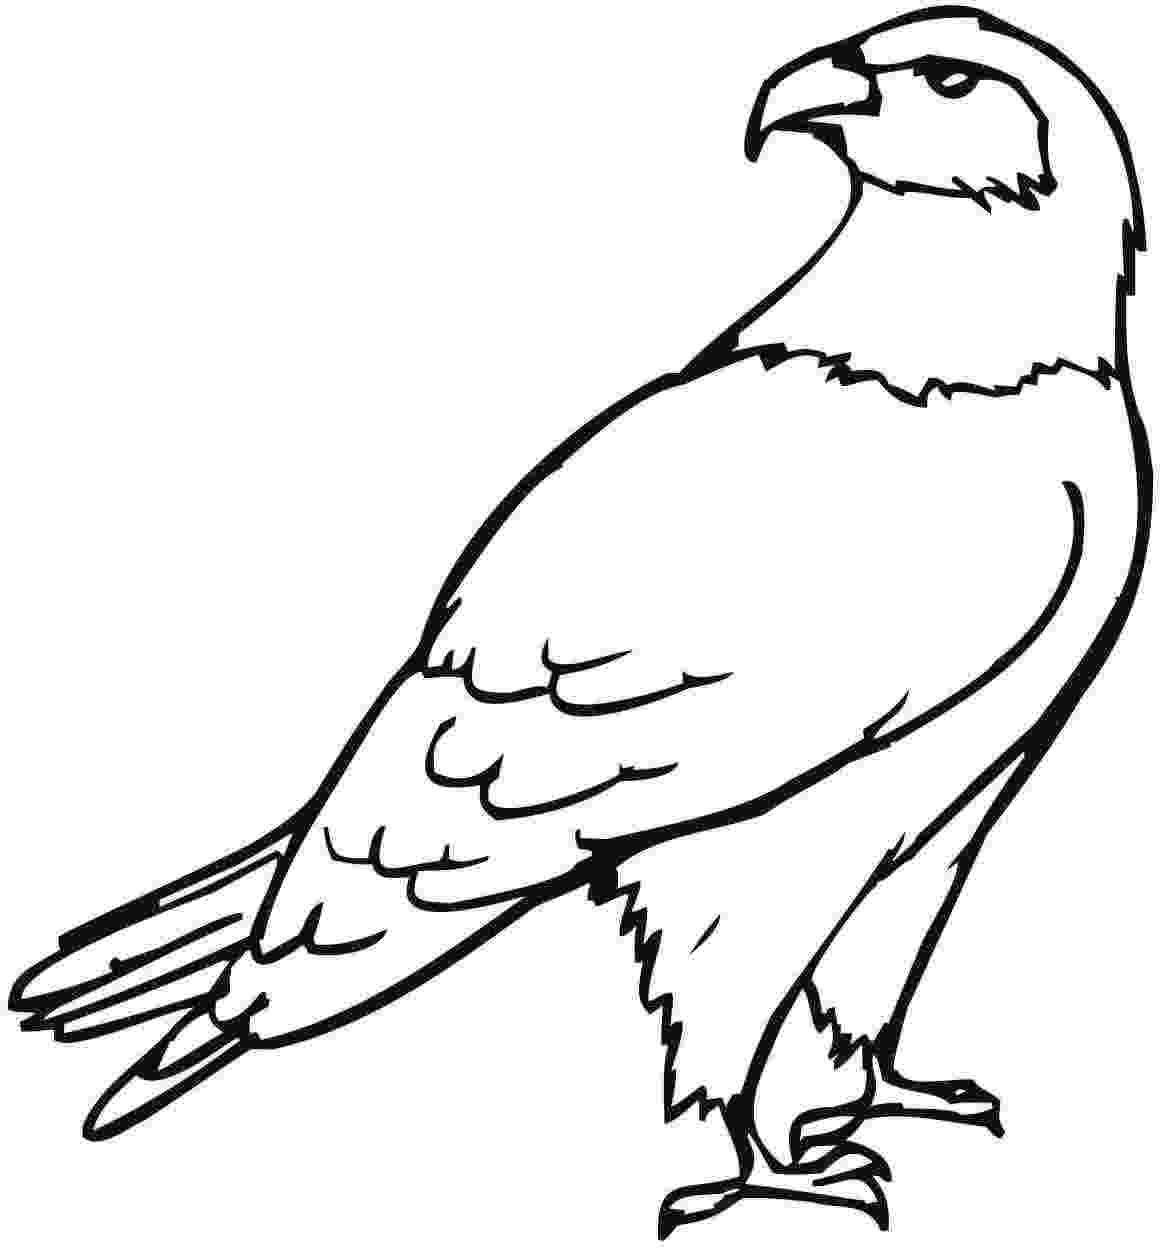 coloring eagle free printable eagle coloring pages for kids eagle coloring